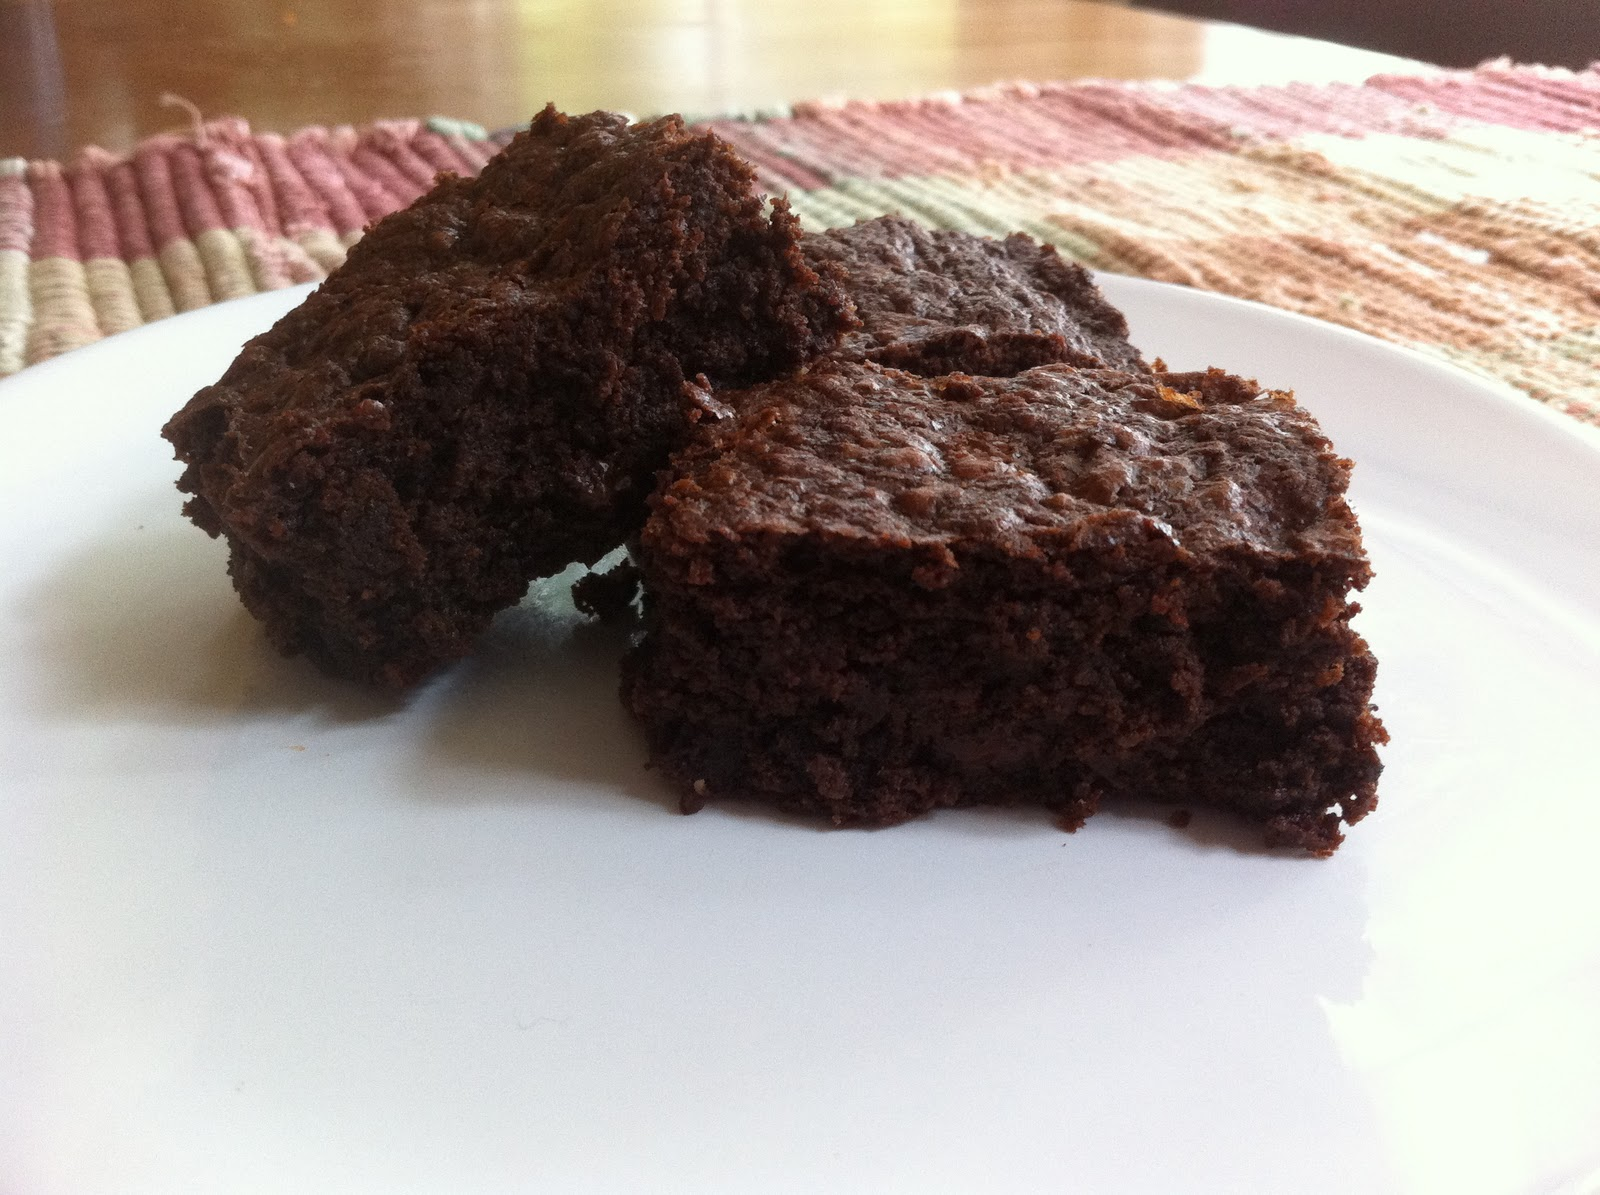 7-Day Menu: Outrageous Brownies